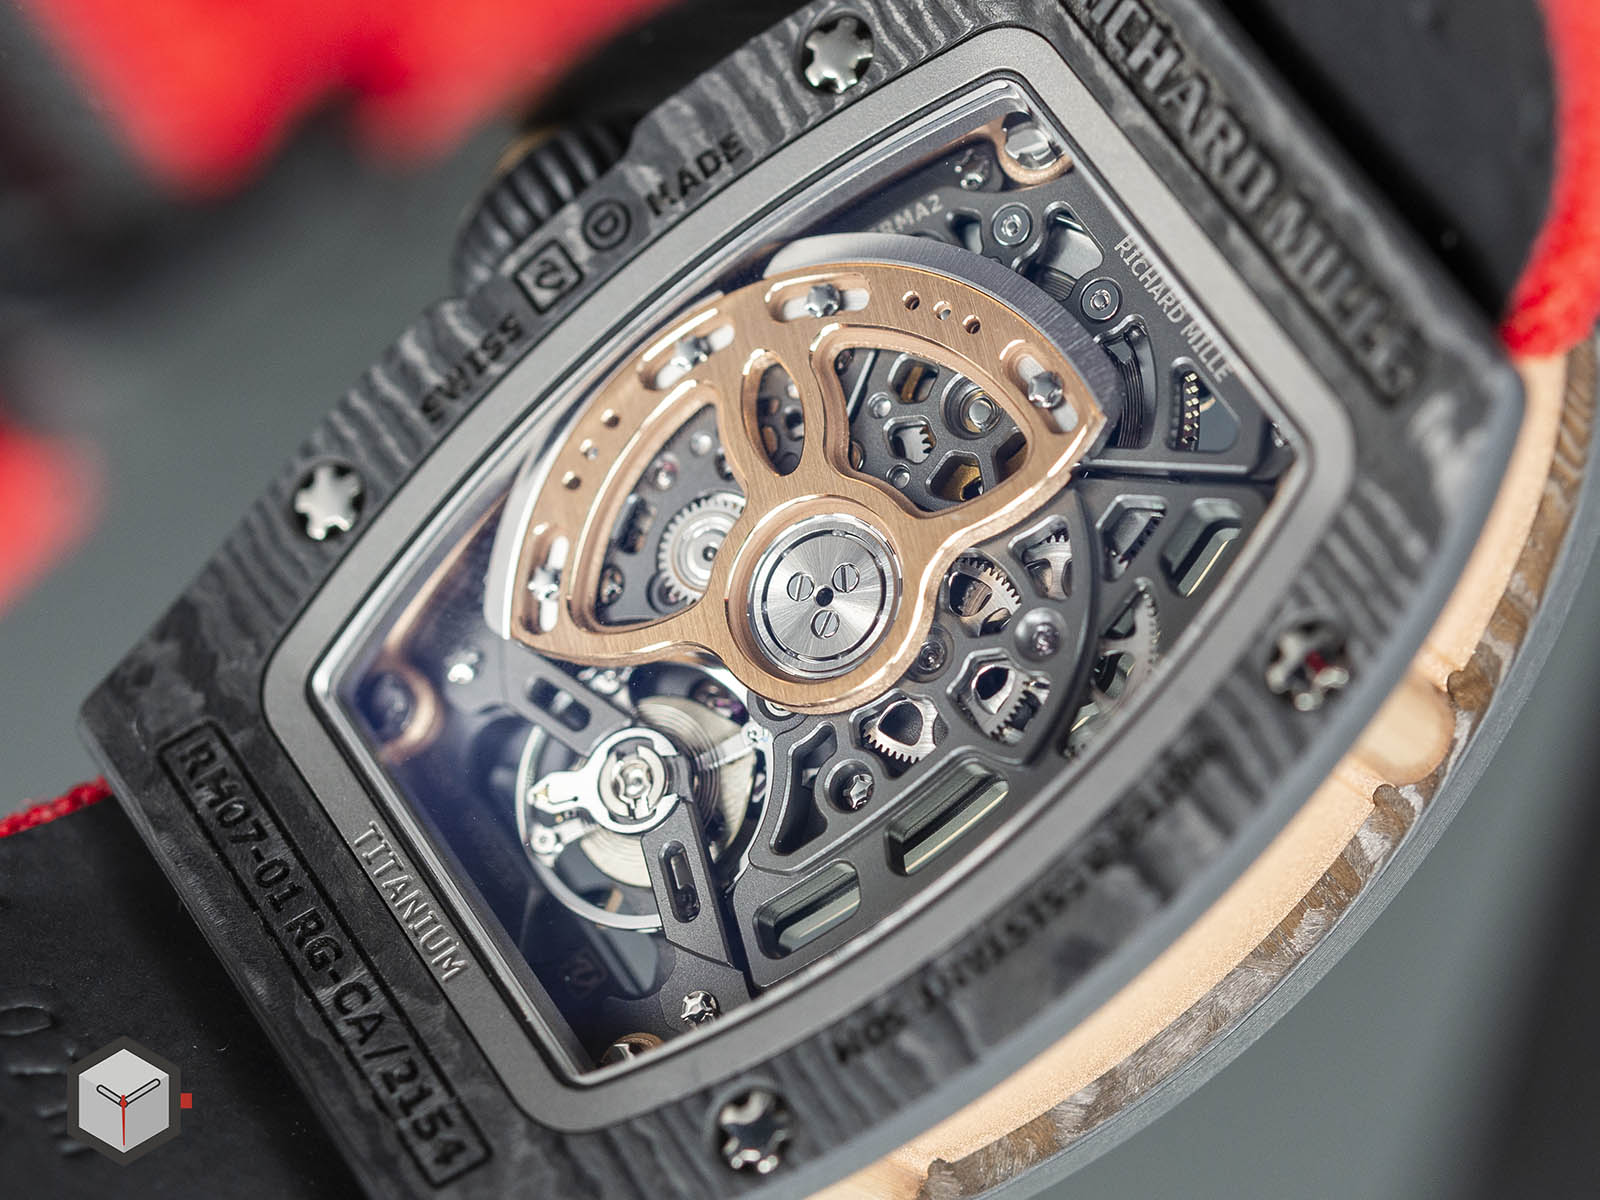 richard-mille-rm-07-01-automatic-7.jpg